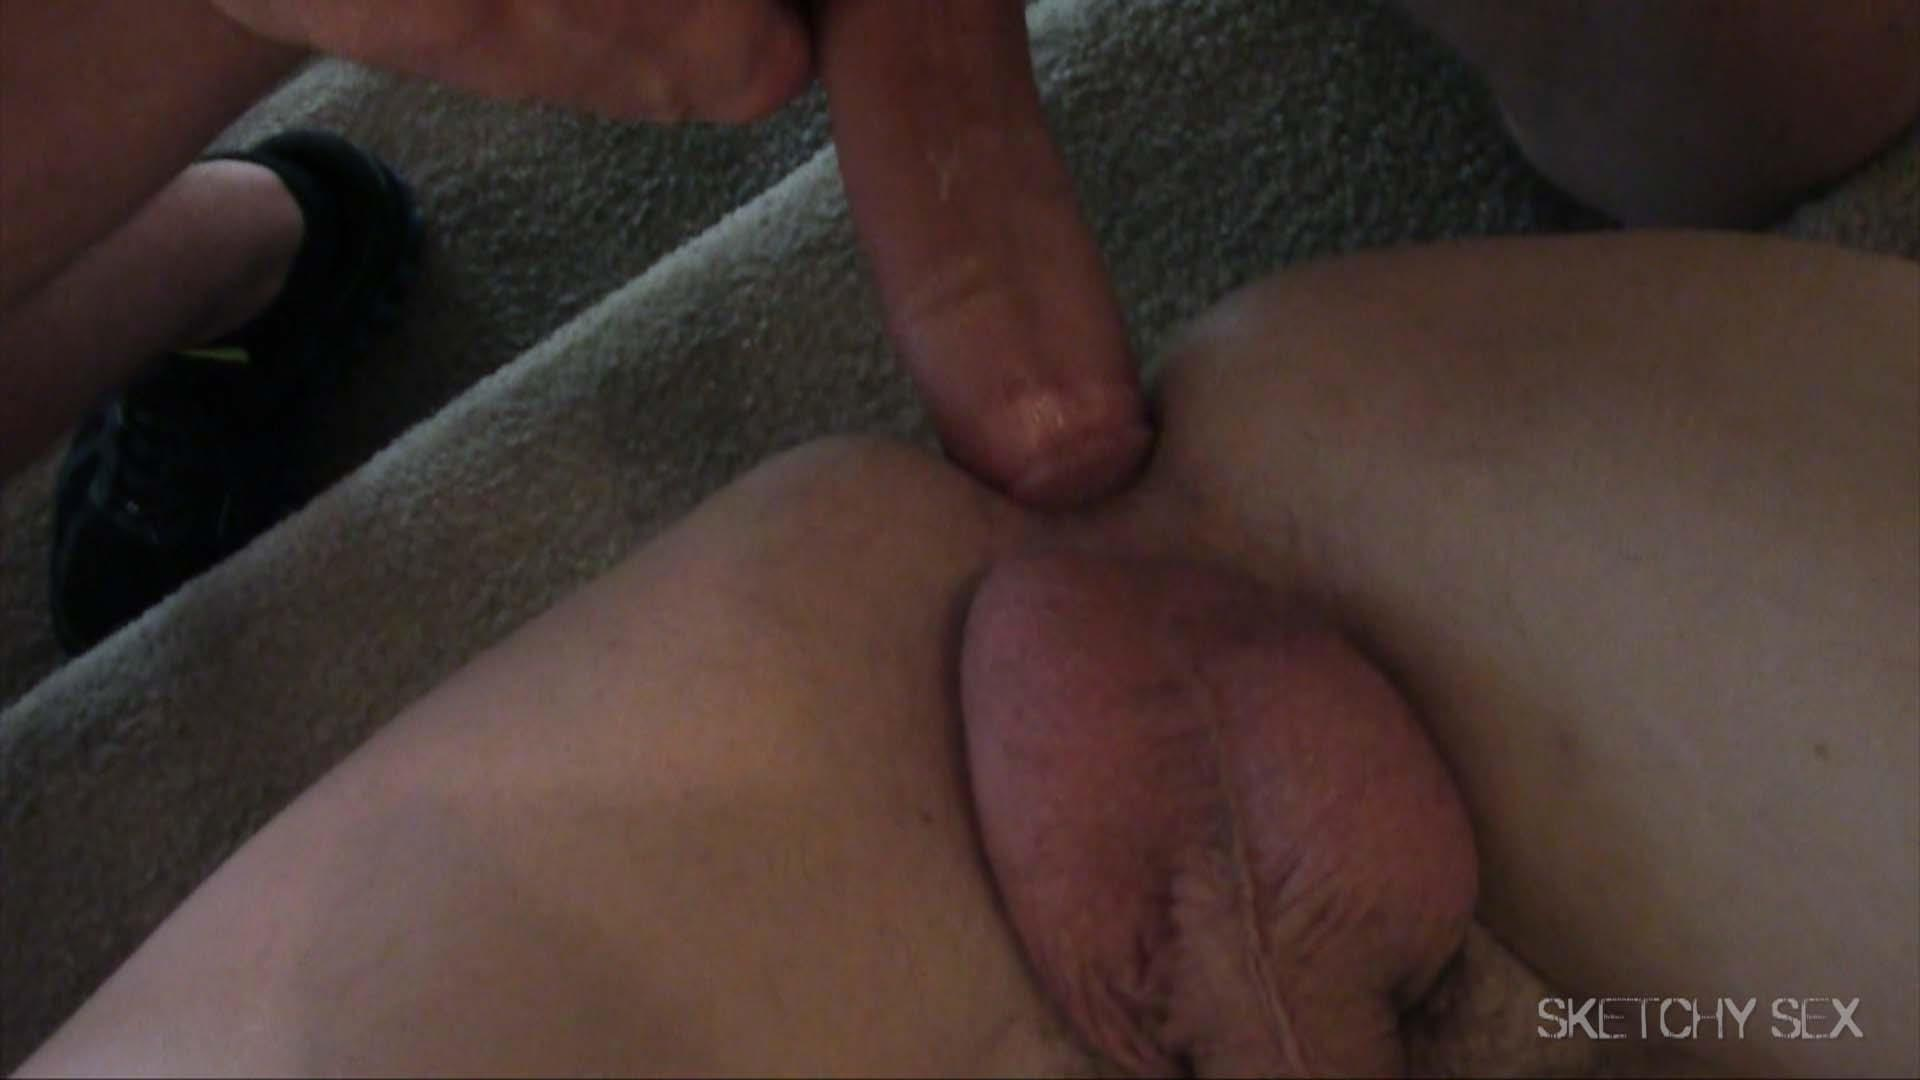 Sketchy-Sex-Bareback-Breeding-Anonymous-Sex-Amateur-Gay-Porn-07 Three Hung Guys Breeding A Slutty Jock Hole